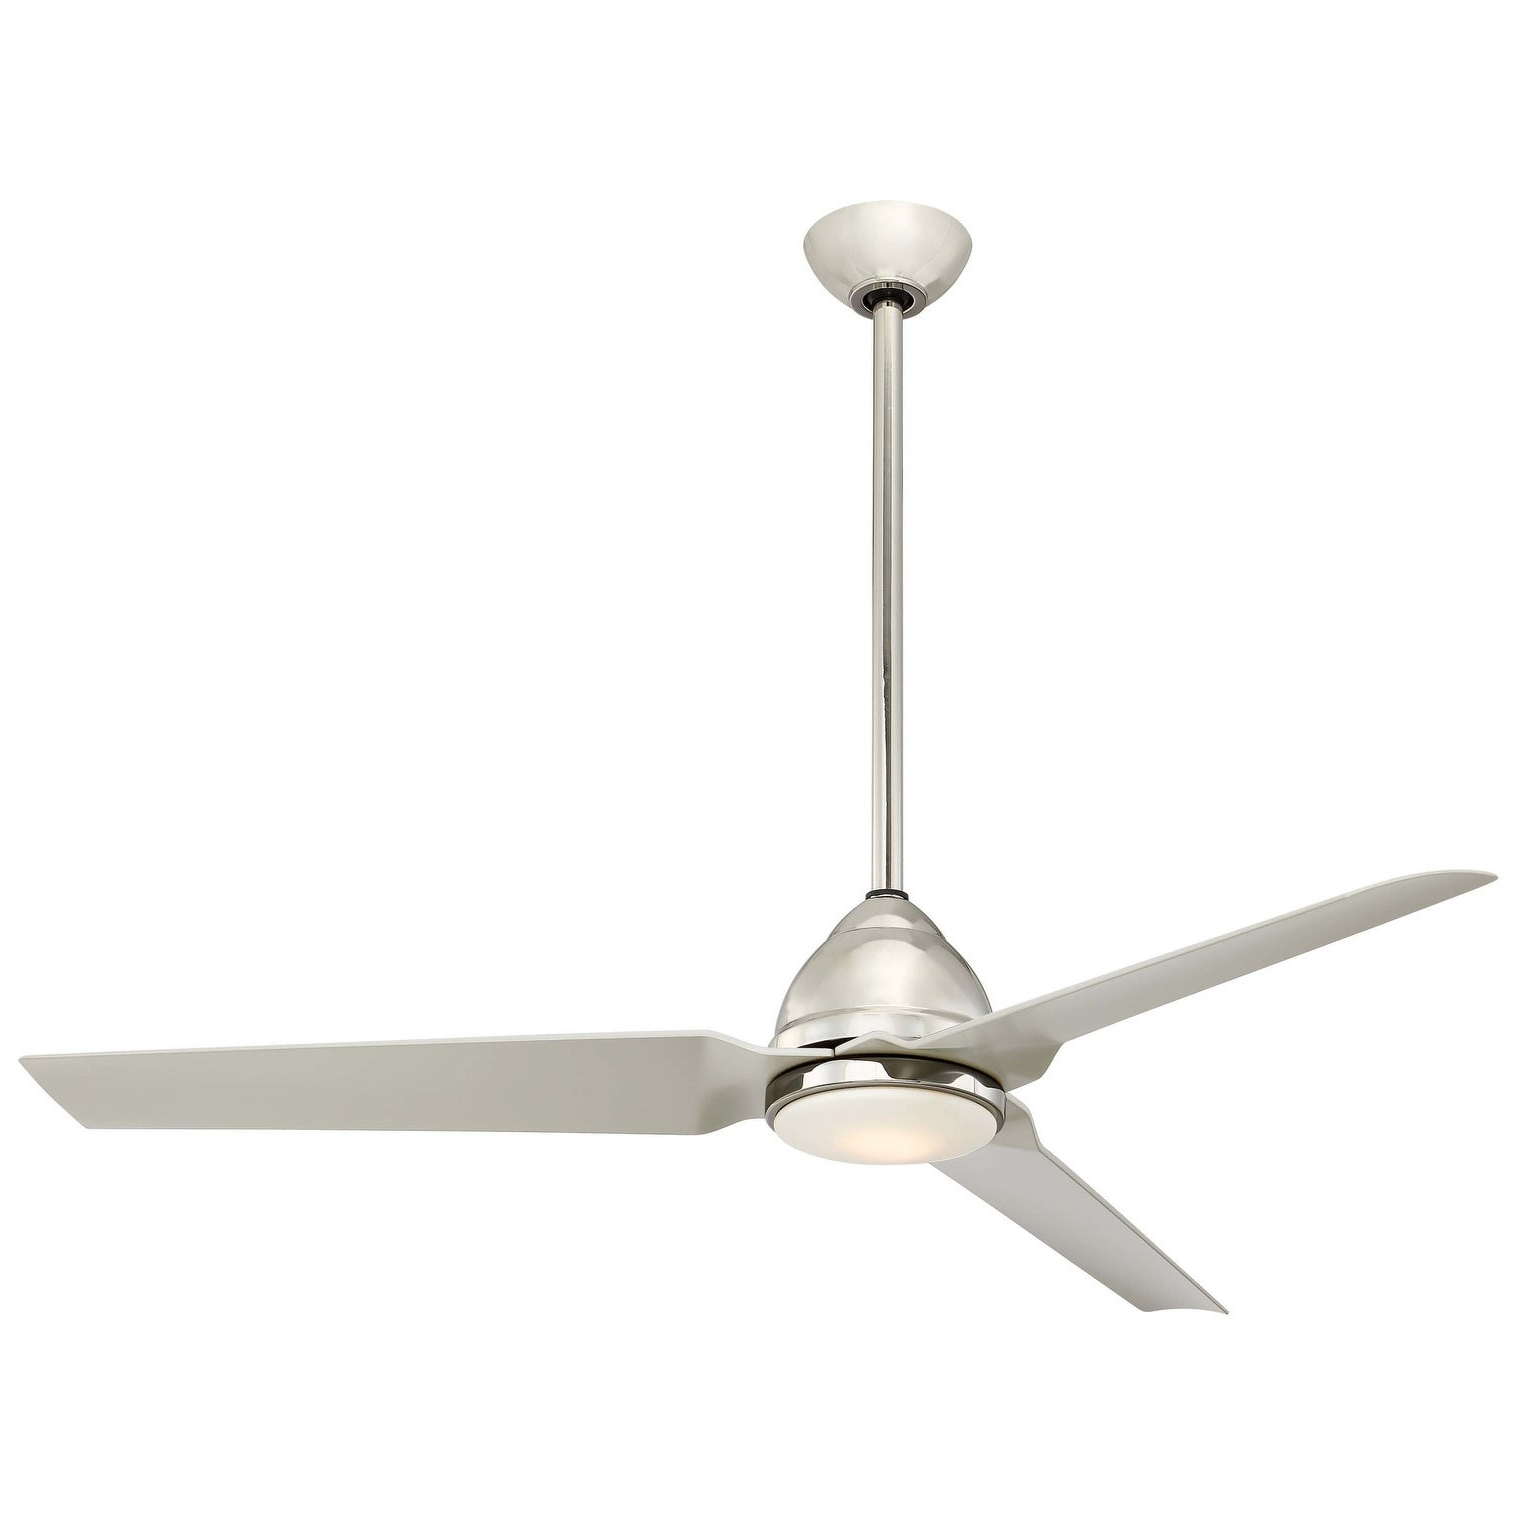 "Minkaaire Java Led Java 54"" 3 Blade Indoor / Outdoor Led Ceiling Fan With  Remote Included Within 2020 Java 3 Blade Outdoor Led Ceiling Fans (View 14 of 20)"